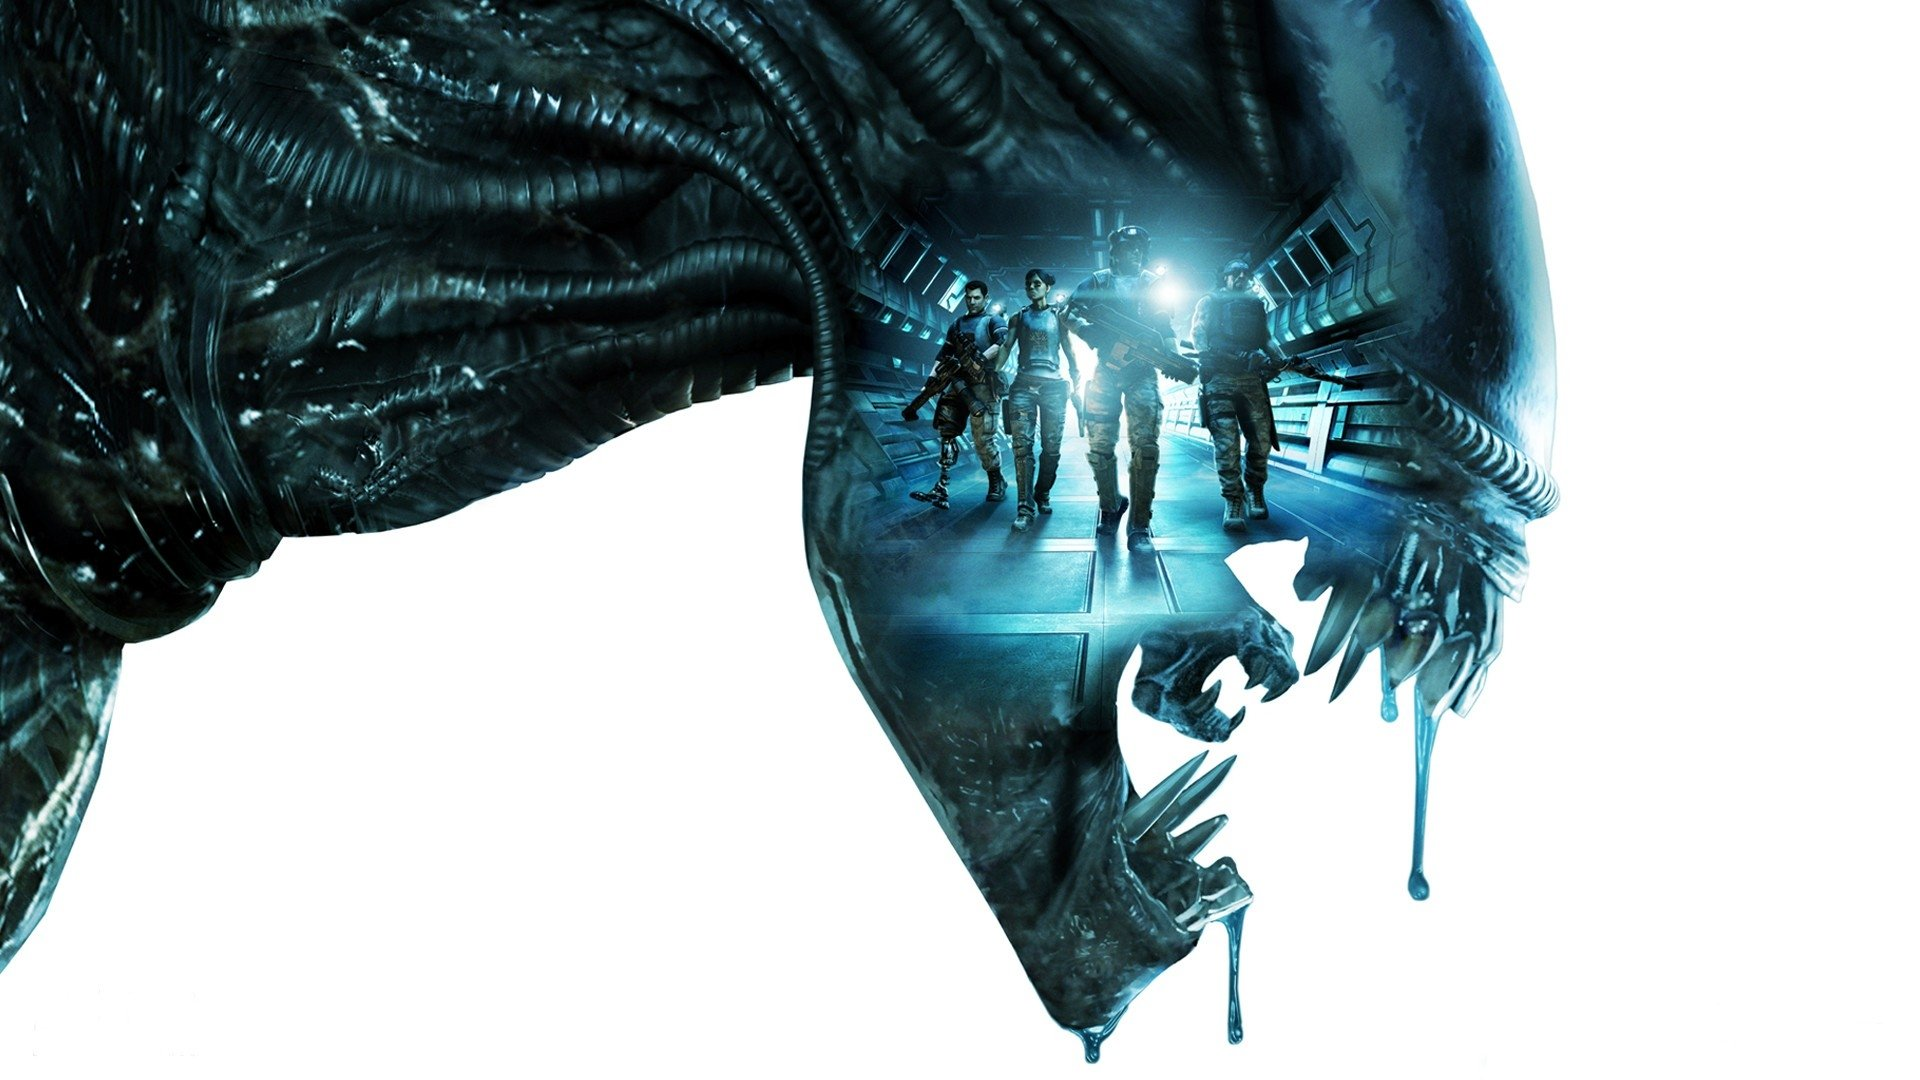 50 Aliens Colonial Marines Hd Wallpapers Background Images Wallpaper Abyss